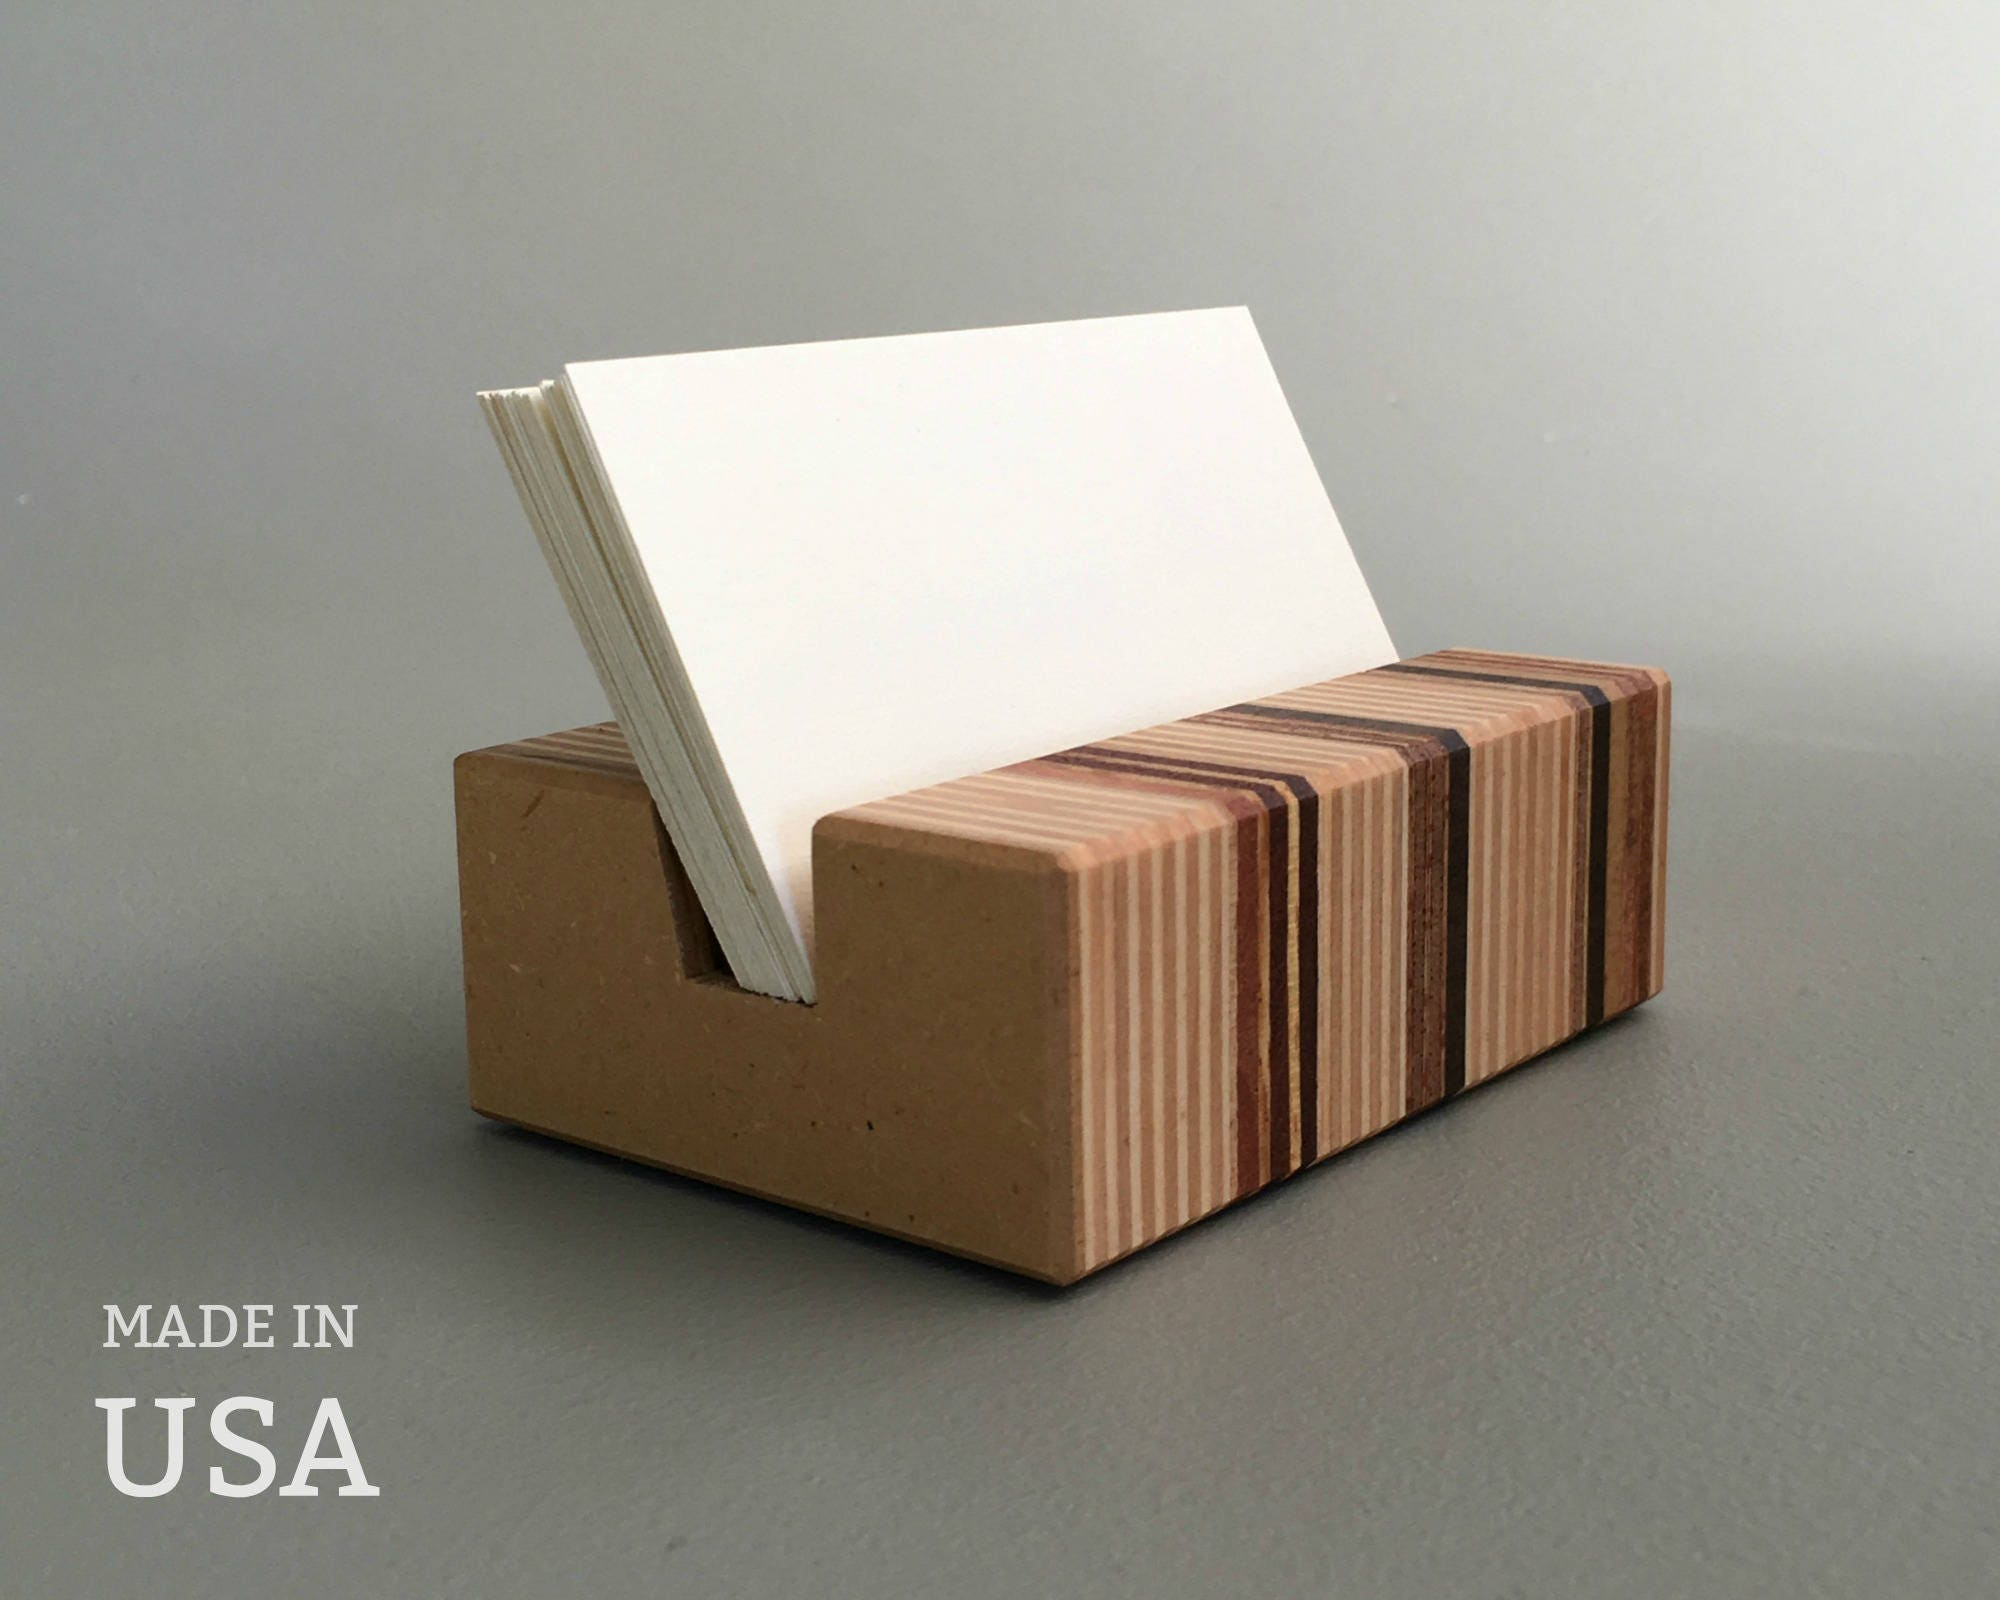 Wood Business Card Holder Modern Wood Holder for Business